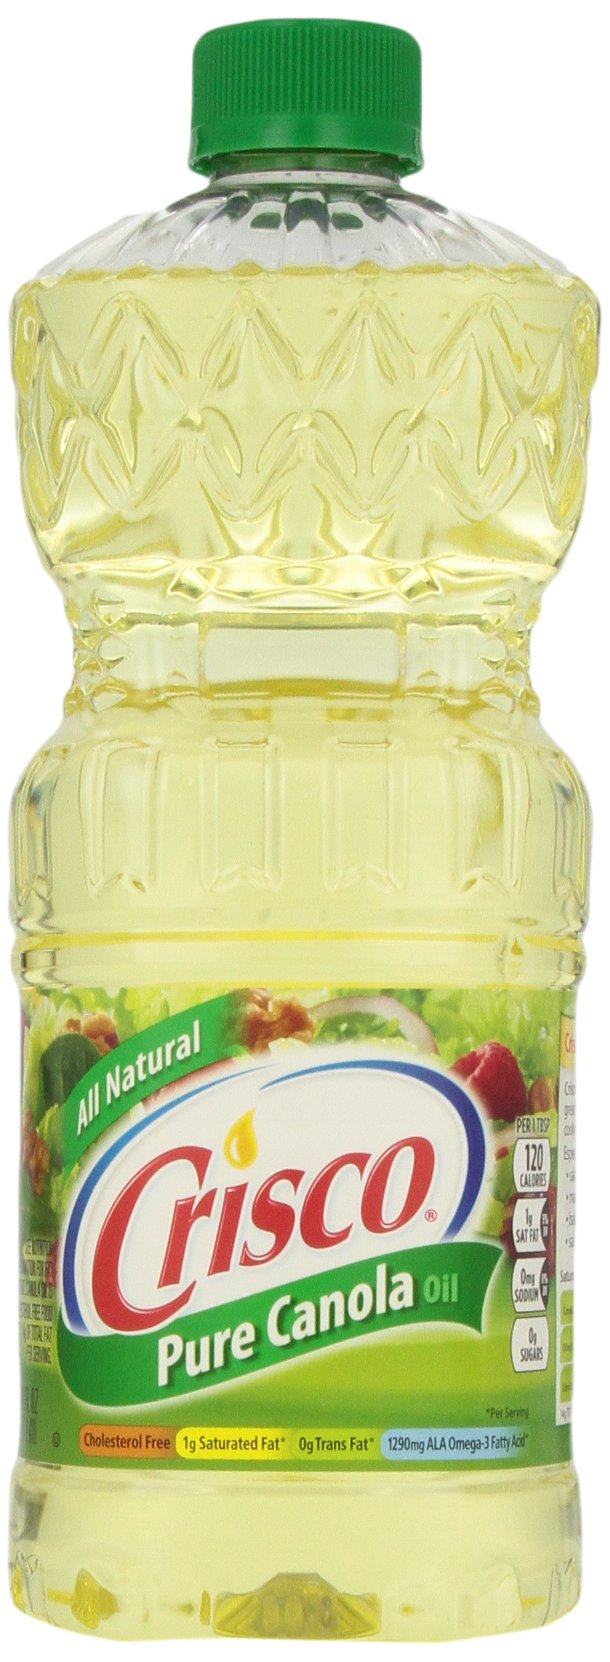 Crisco Pure Canola Oil, 48 Ounce (Pack of 9) by Crisco